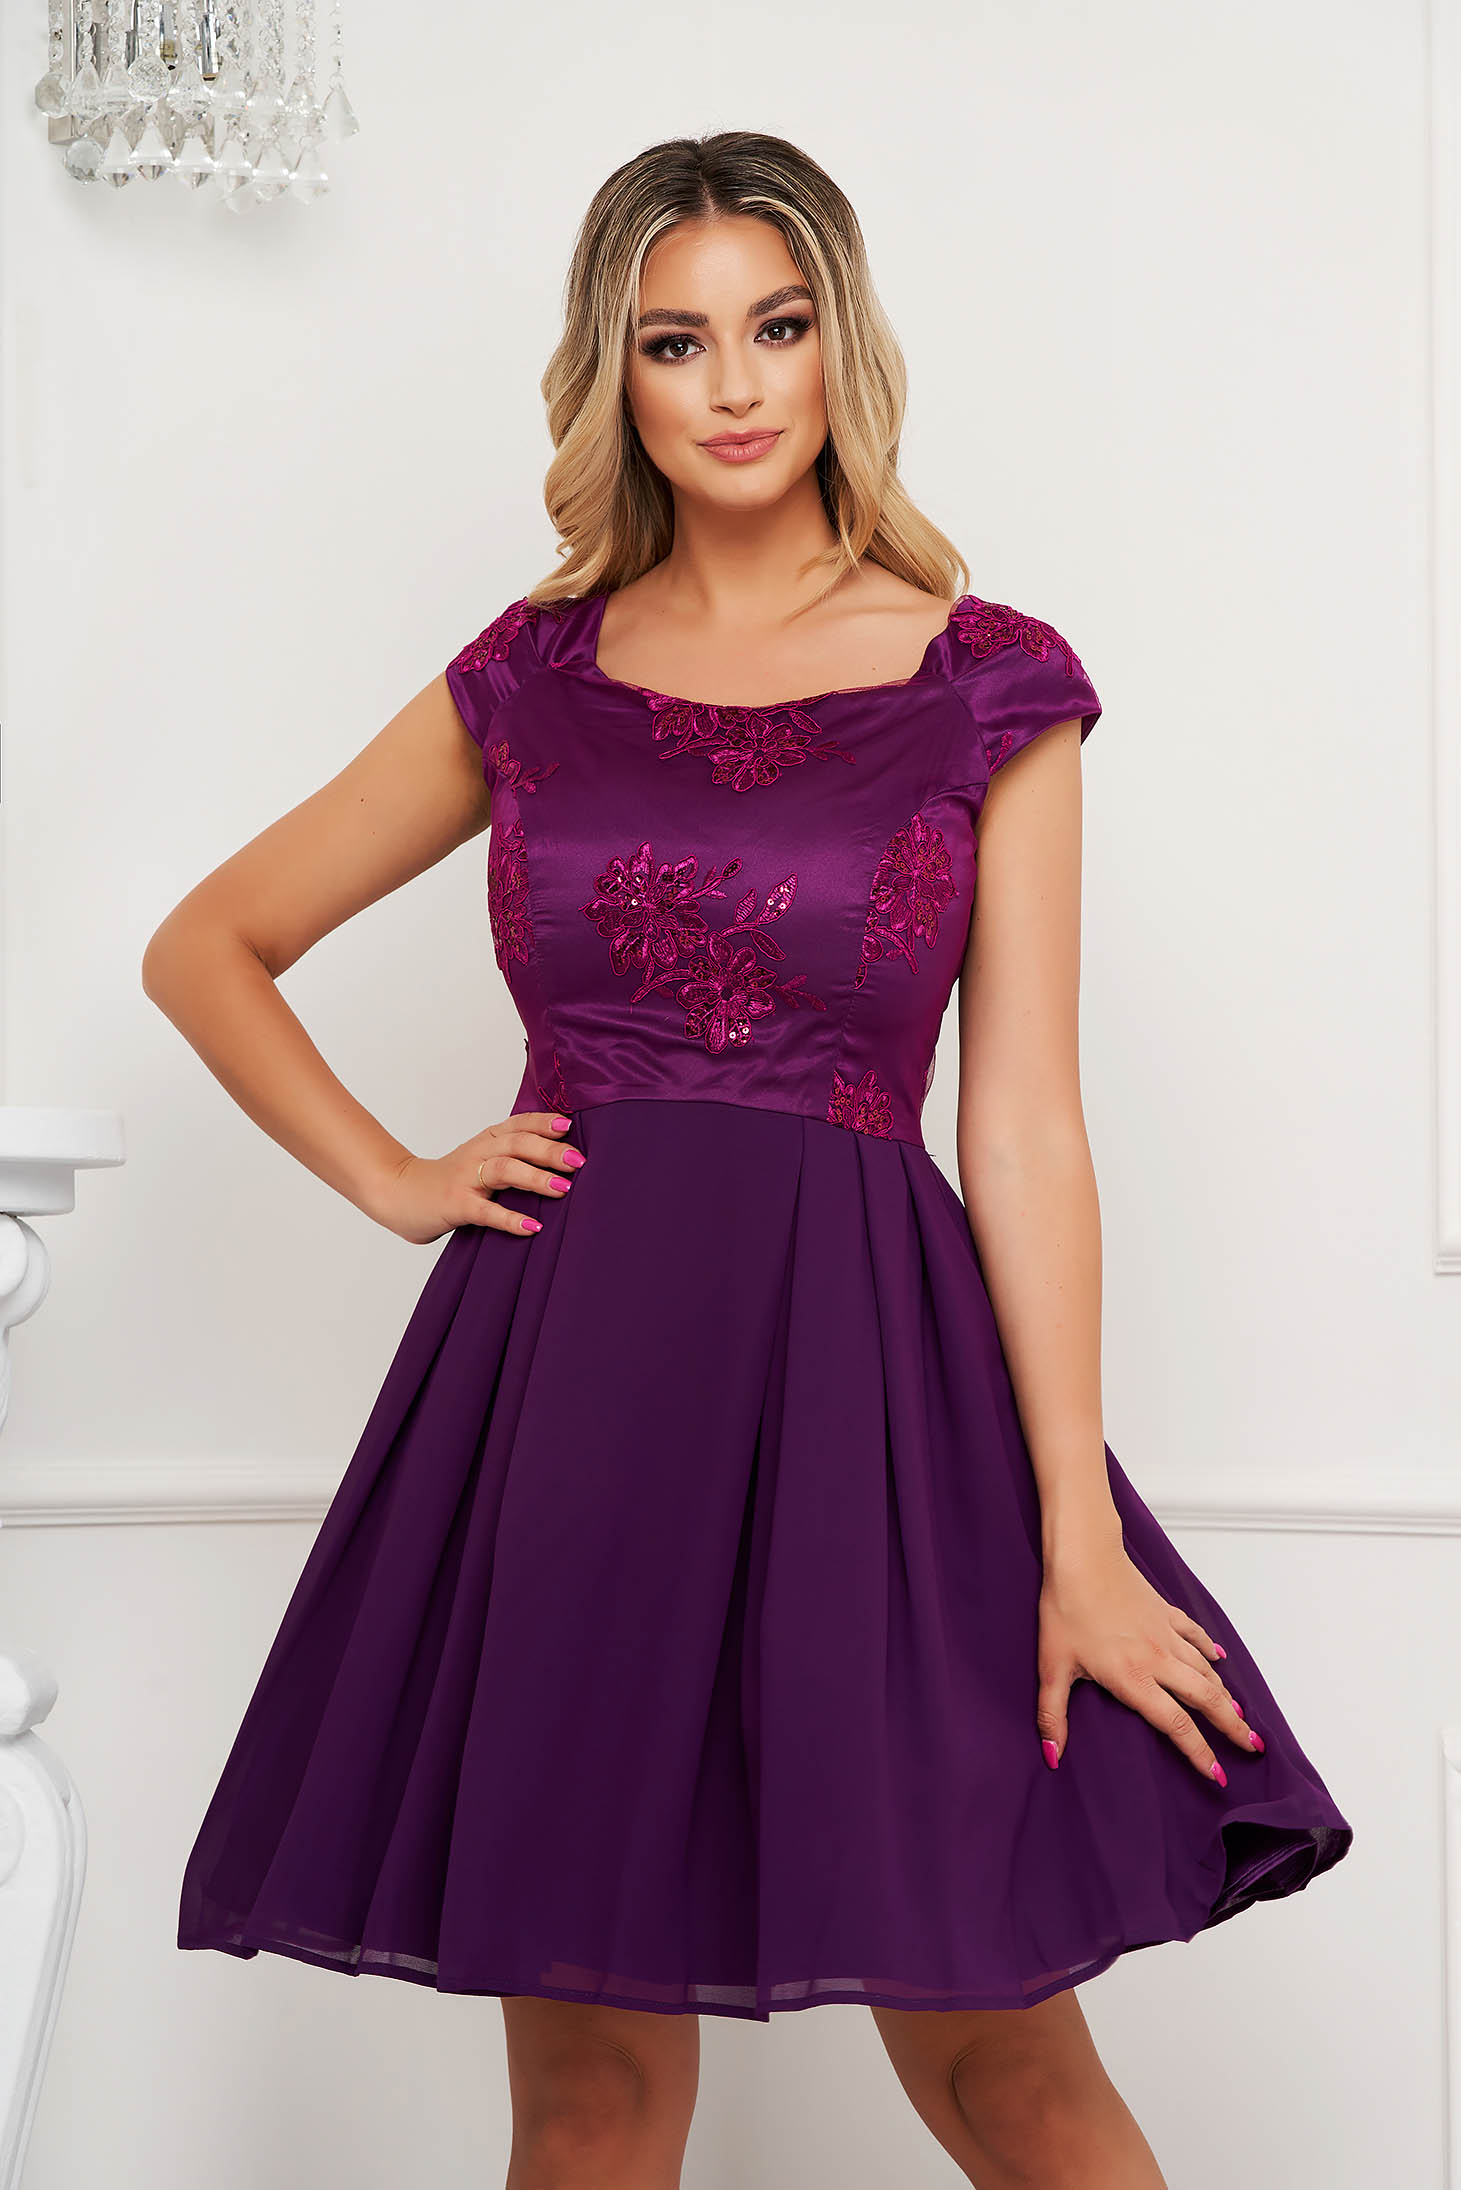 Purple dress cloche with lace details from satin fabric texture occasional short cut